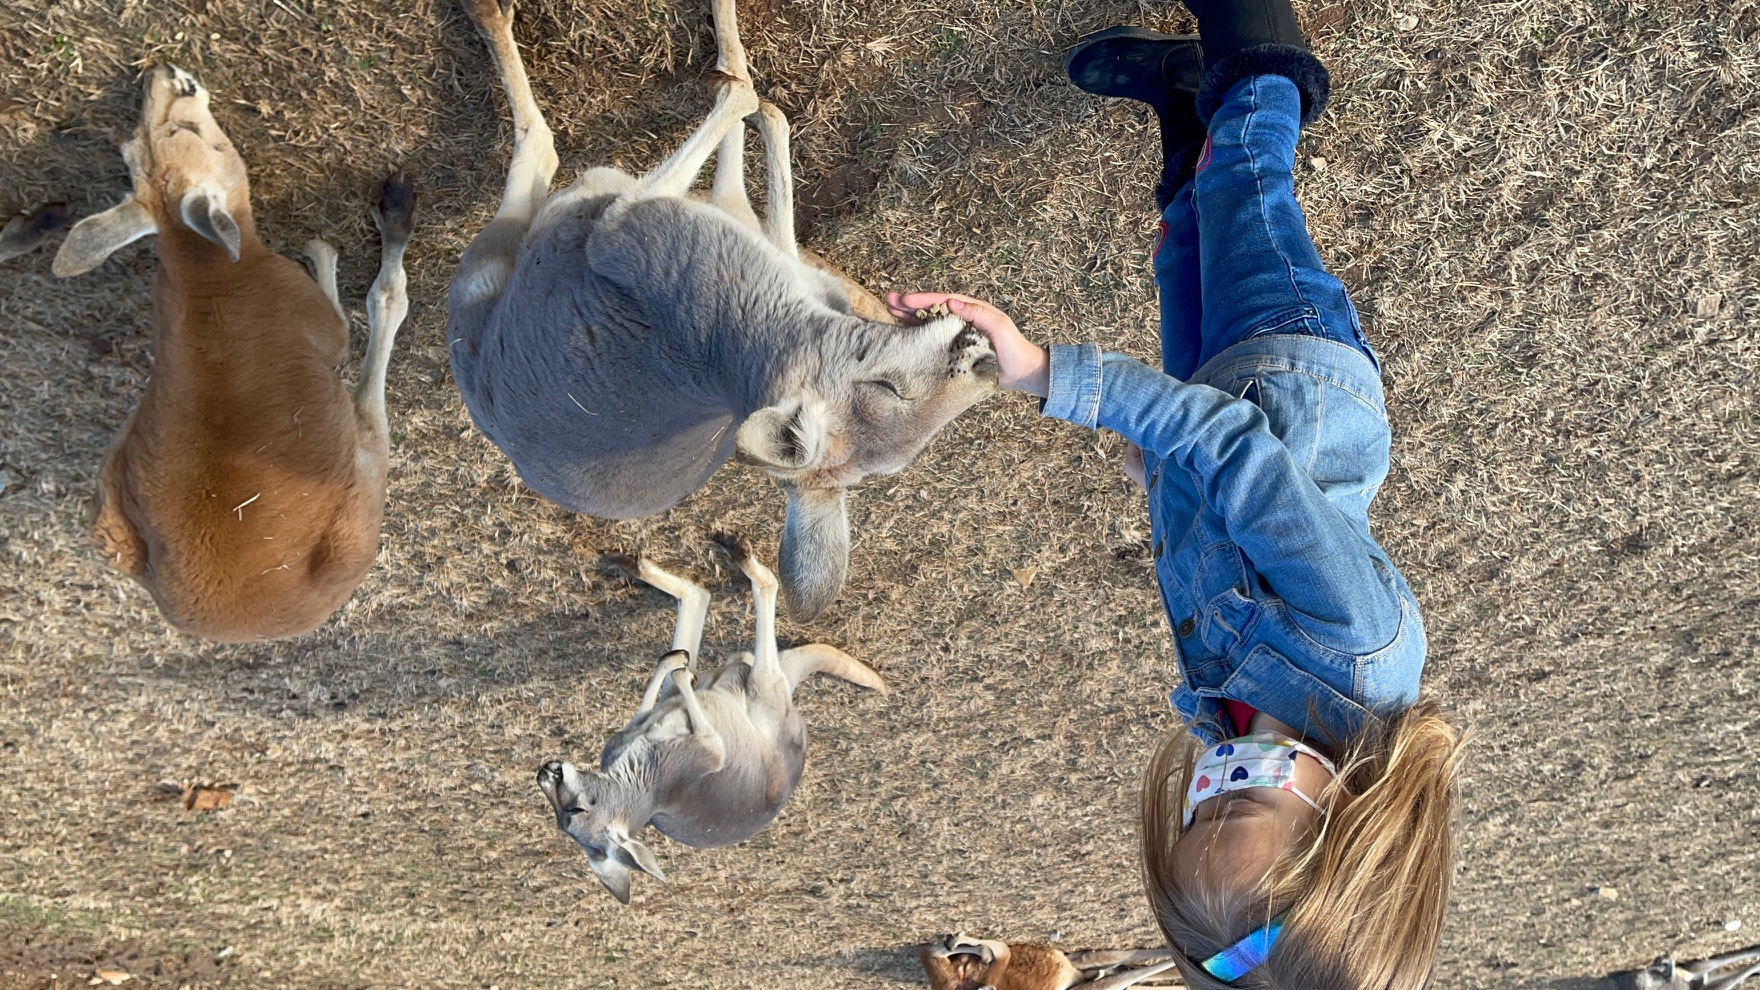 Best things to do in Bowling Green with kids. Kentucky Down Under - Kangaroos eating out of Scarlett's hand